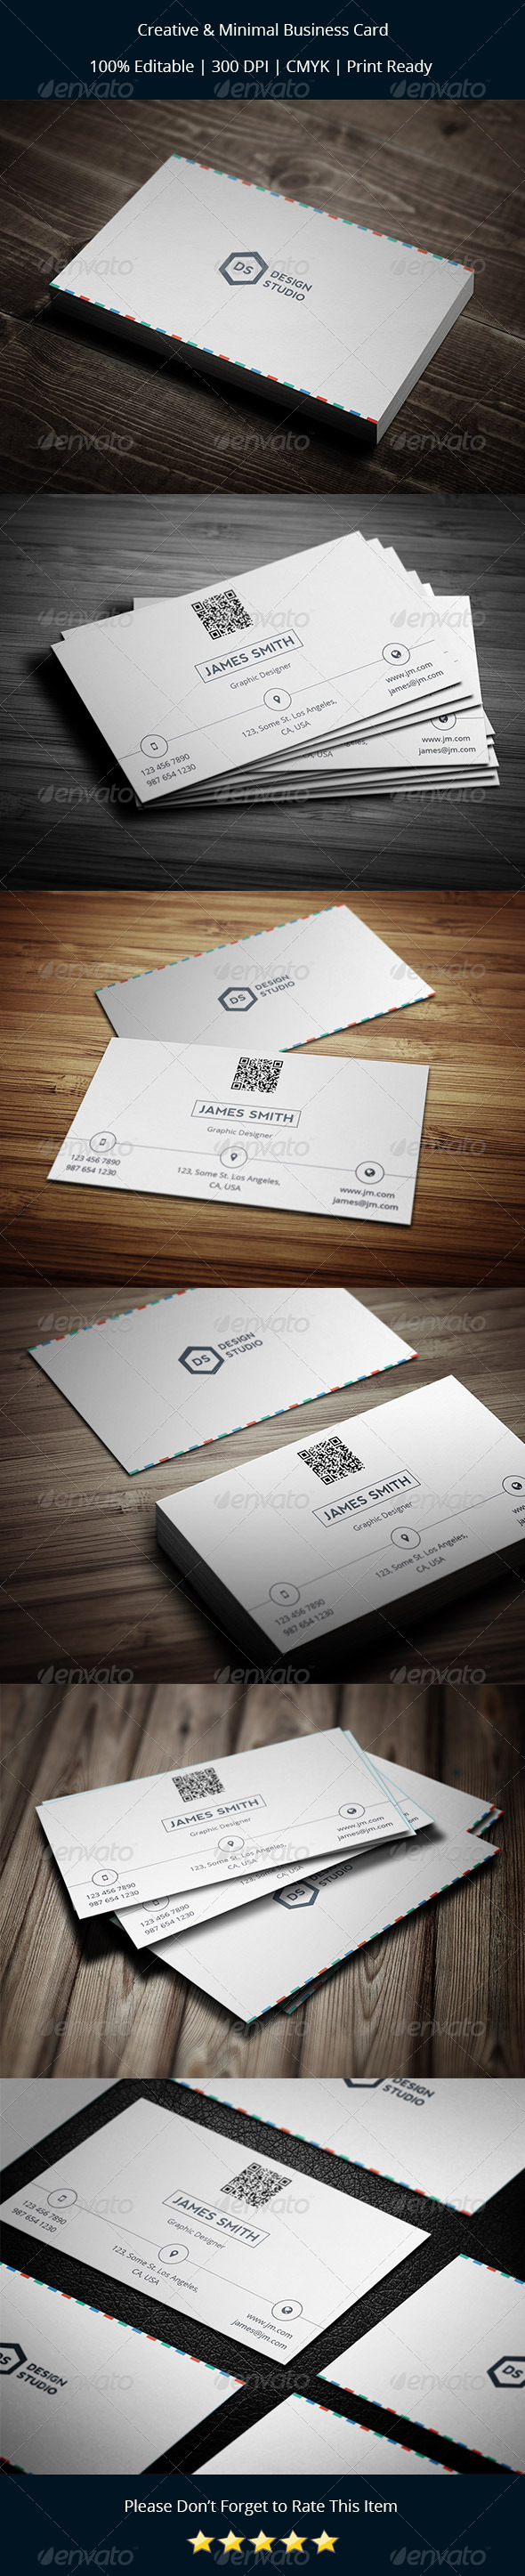 GraphicRiver Creative & Minimal Business Card 8273587